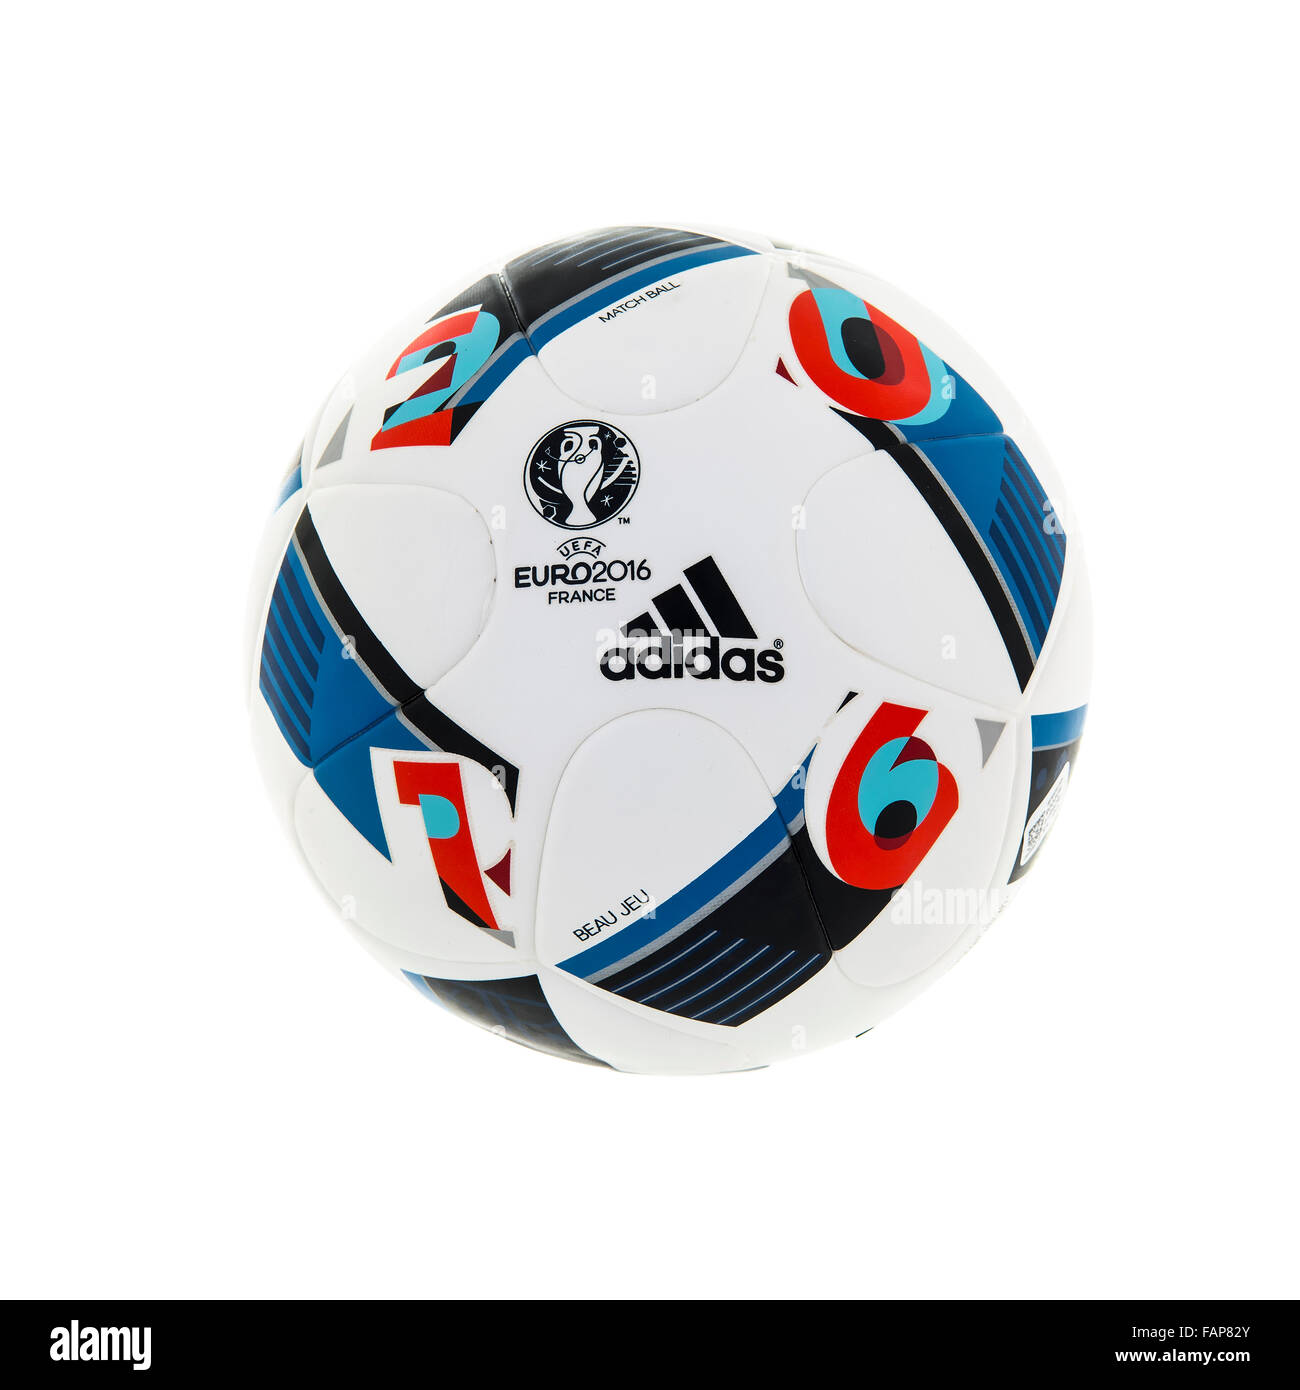 Adidas BEAU JEU official Match Ball for the UEFA EURO 2016 football tournament in France on a white background - Stock Image